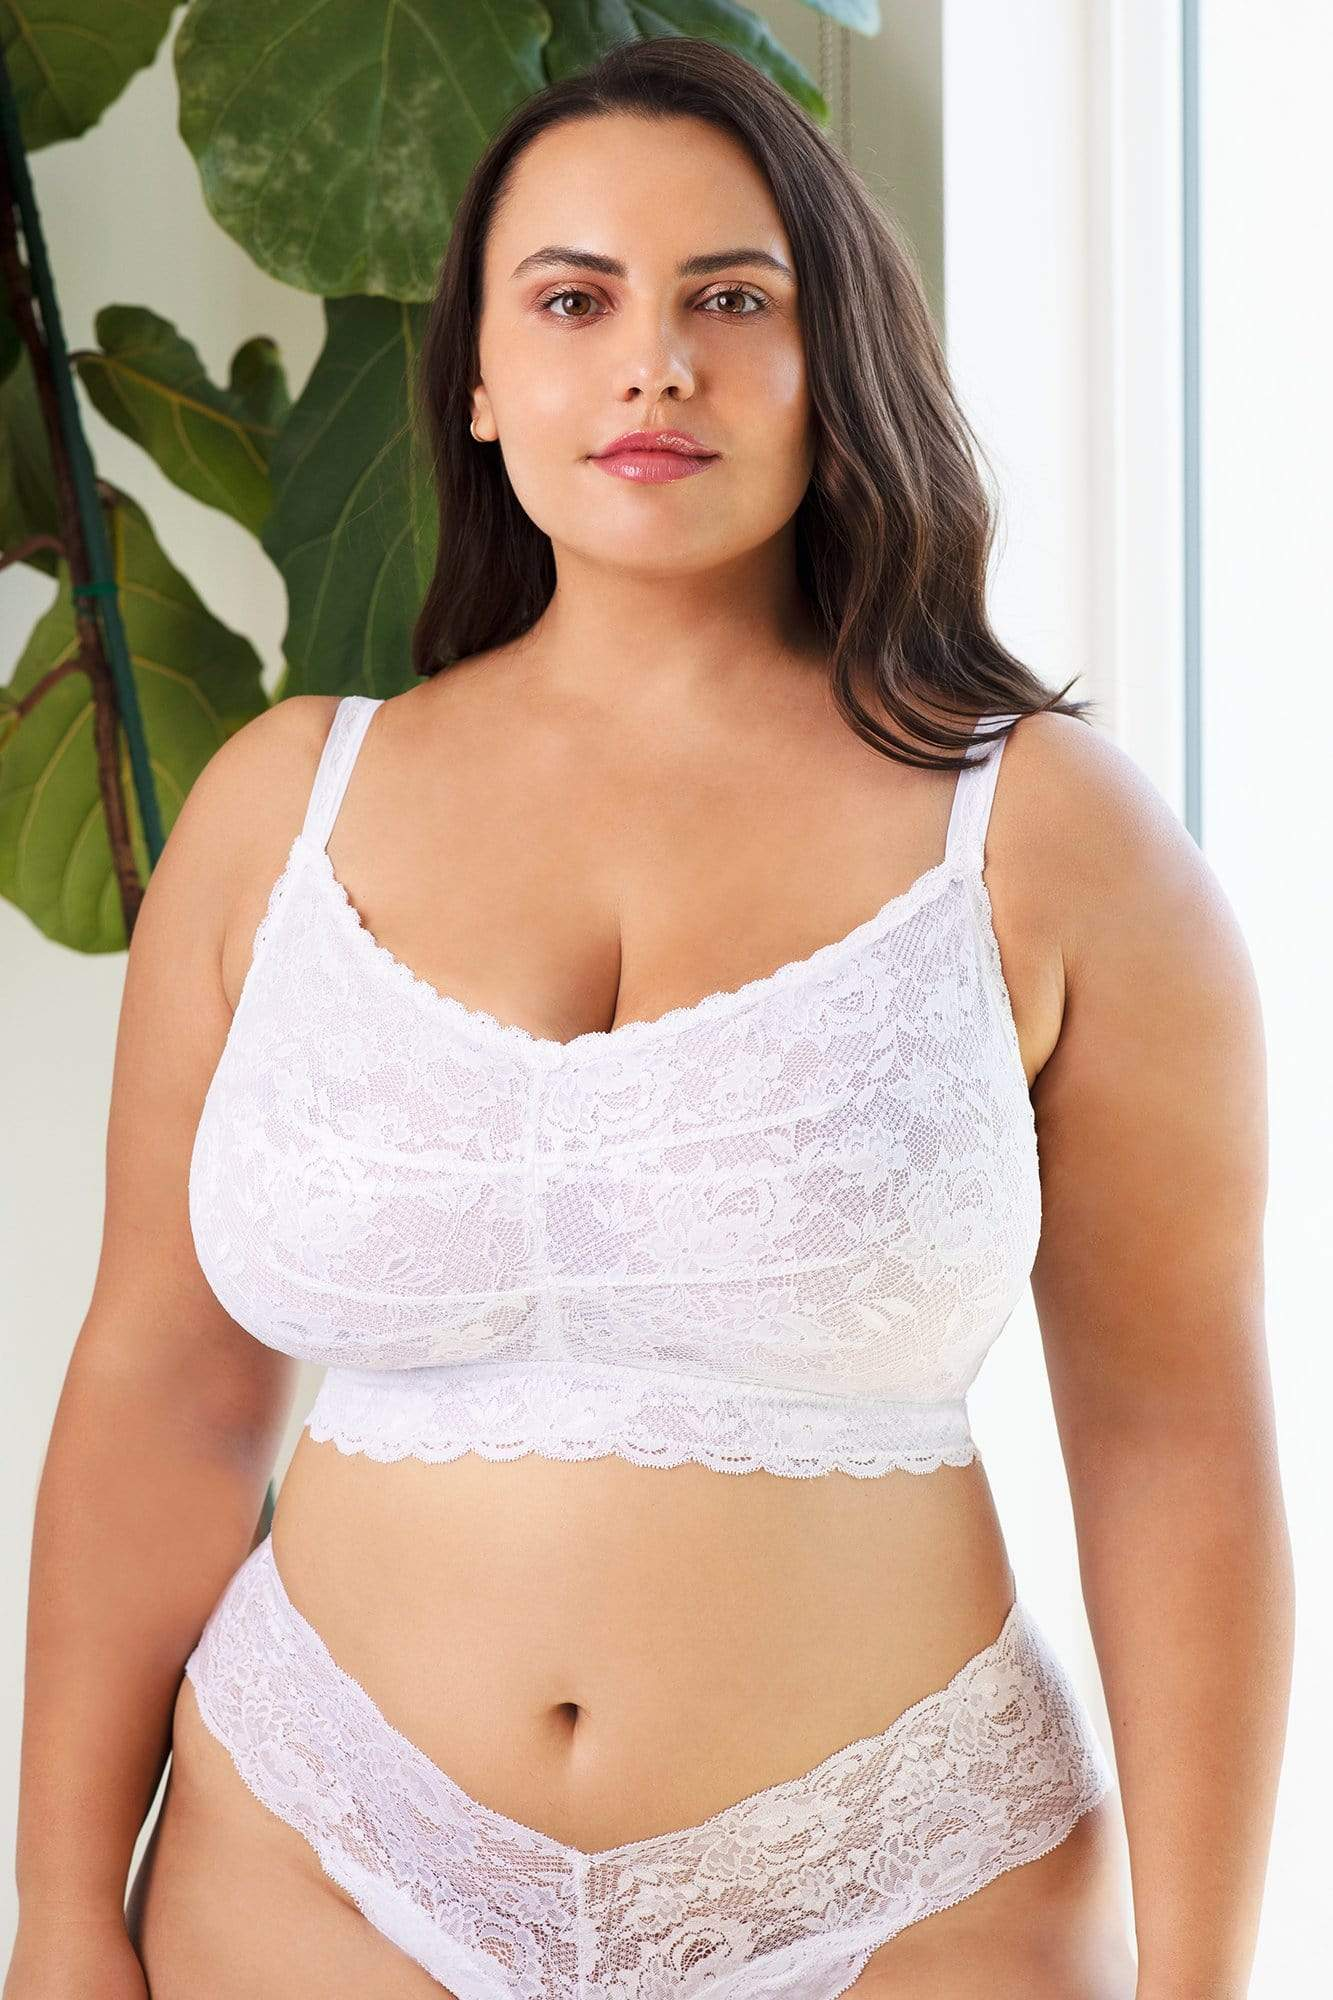 cosabella never say never ultra curvy sweetie bralette in white size small